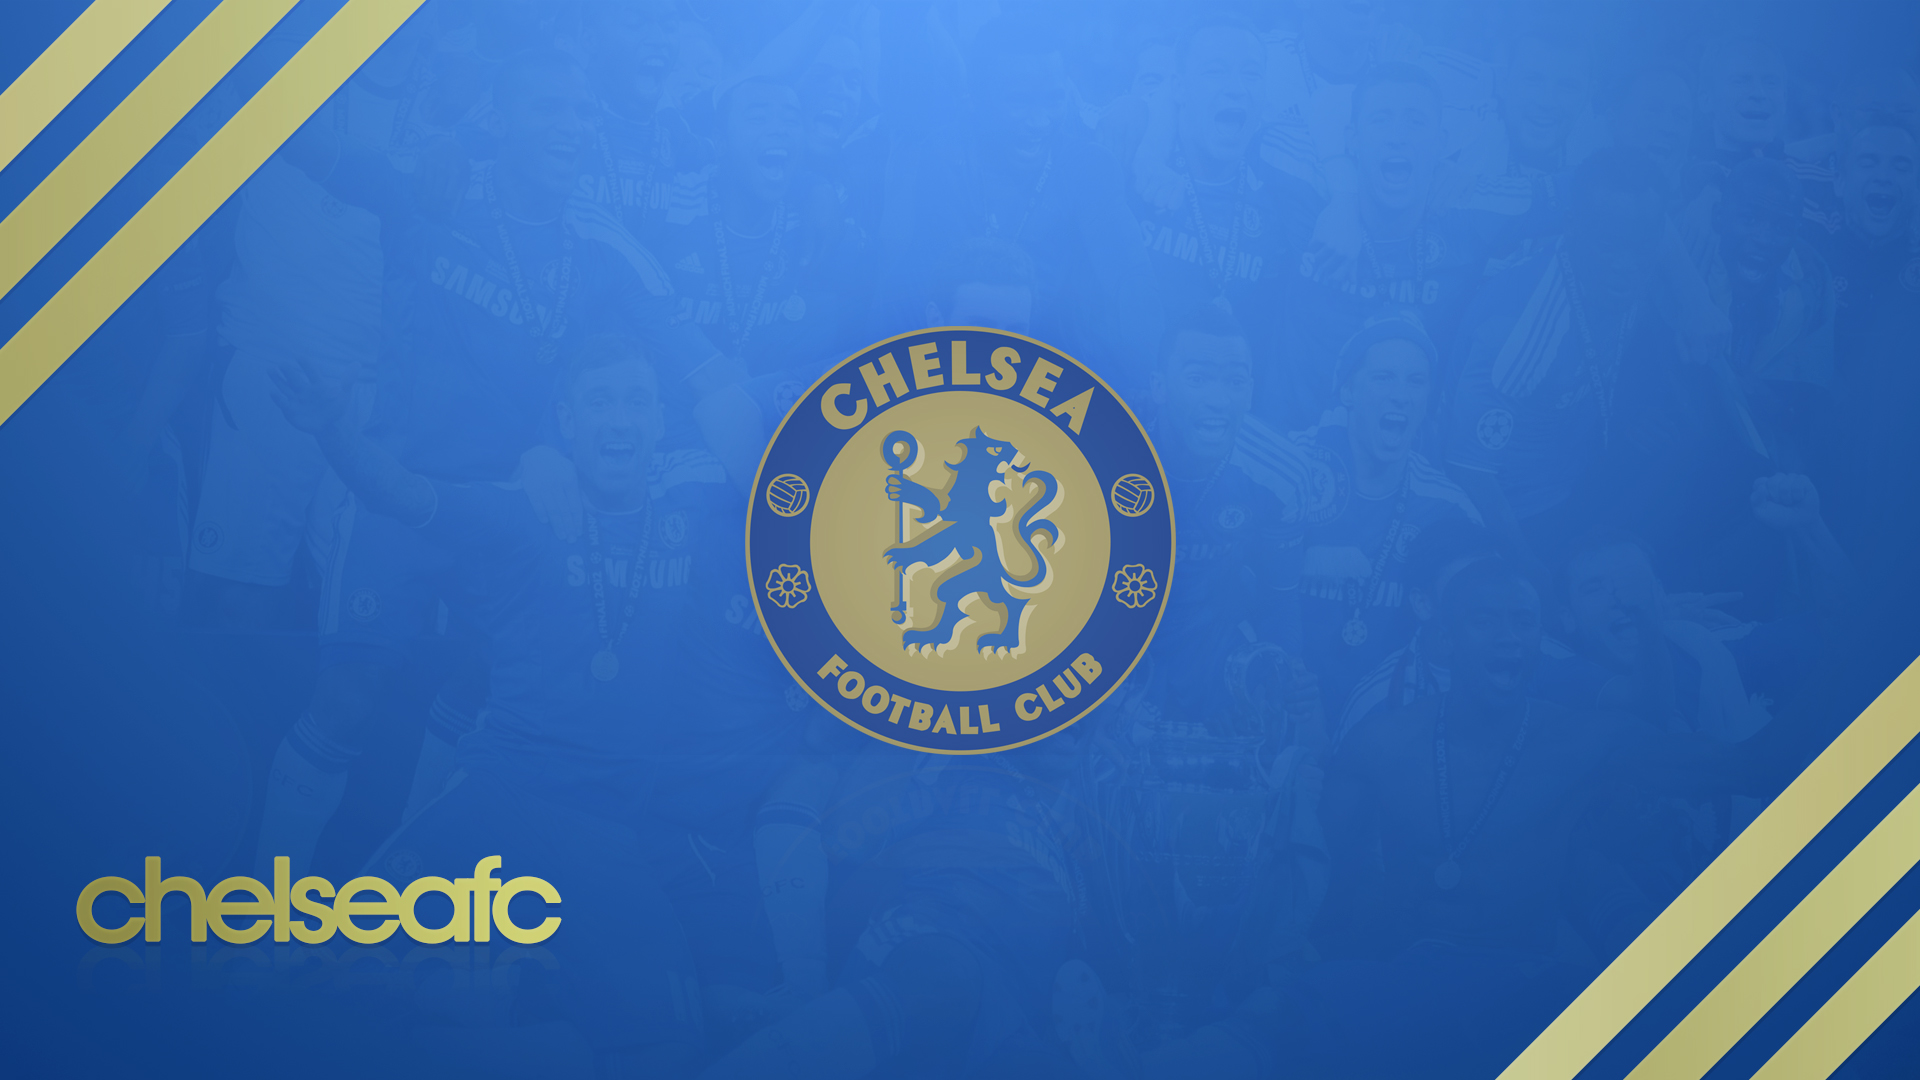 HQ Chelsea F.C. Wallpapers | File 727.42Kb